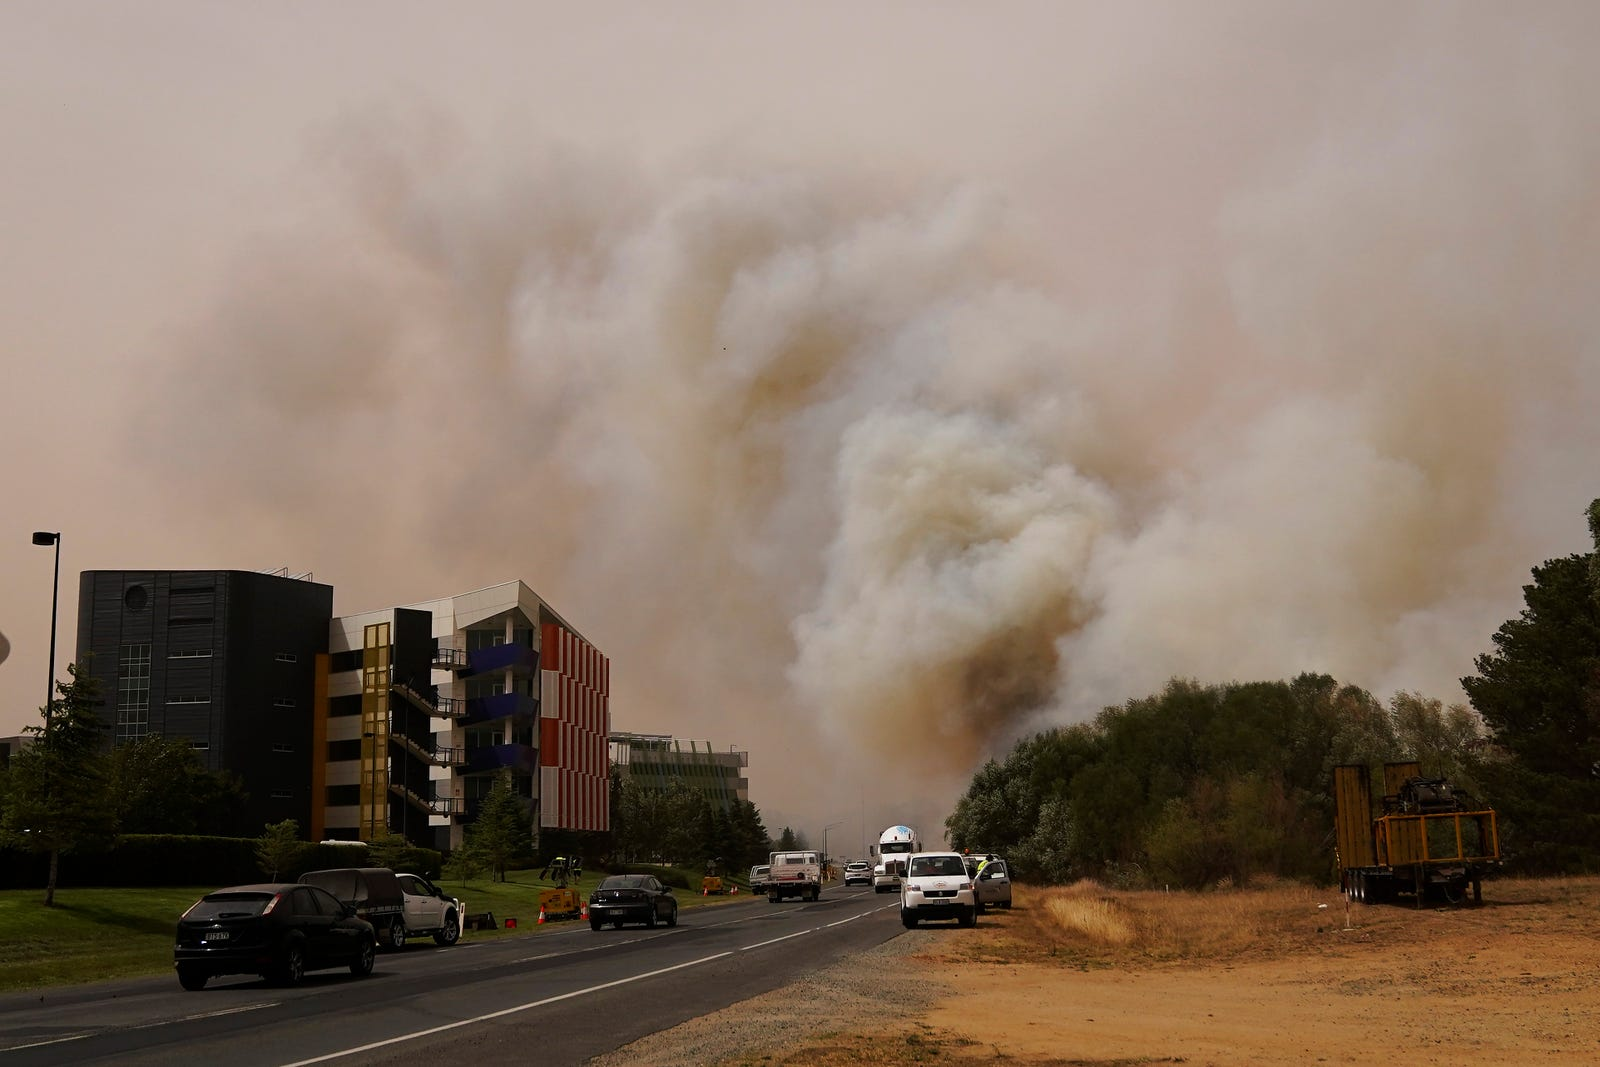 A bushfire burns on January 23, 2020 in Canberra, Australia.